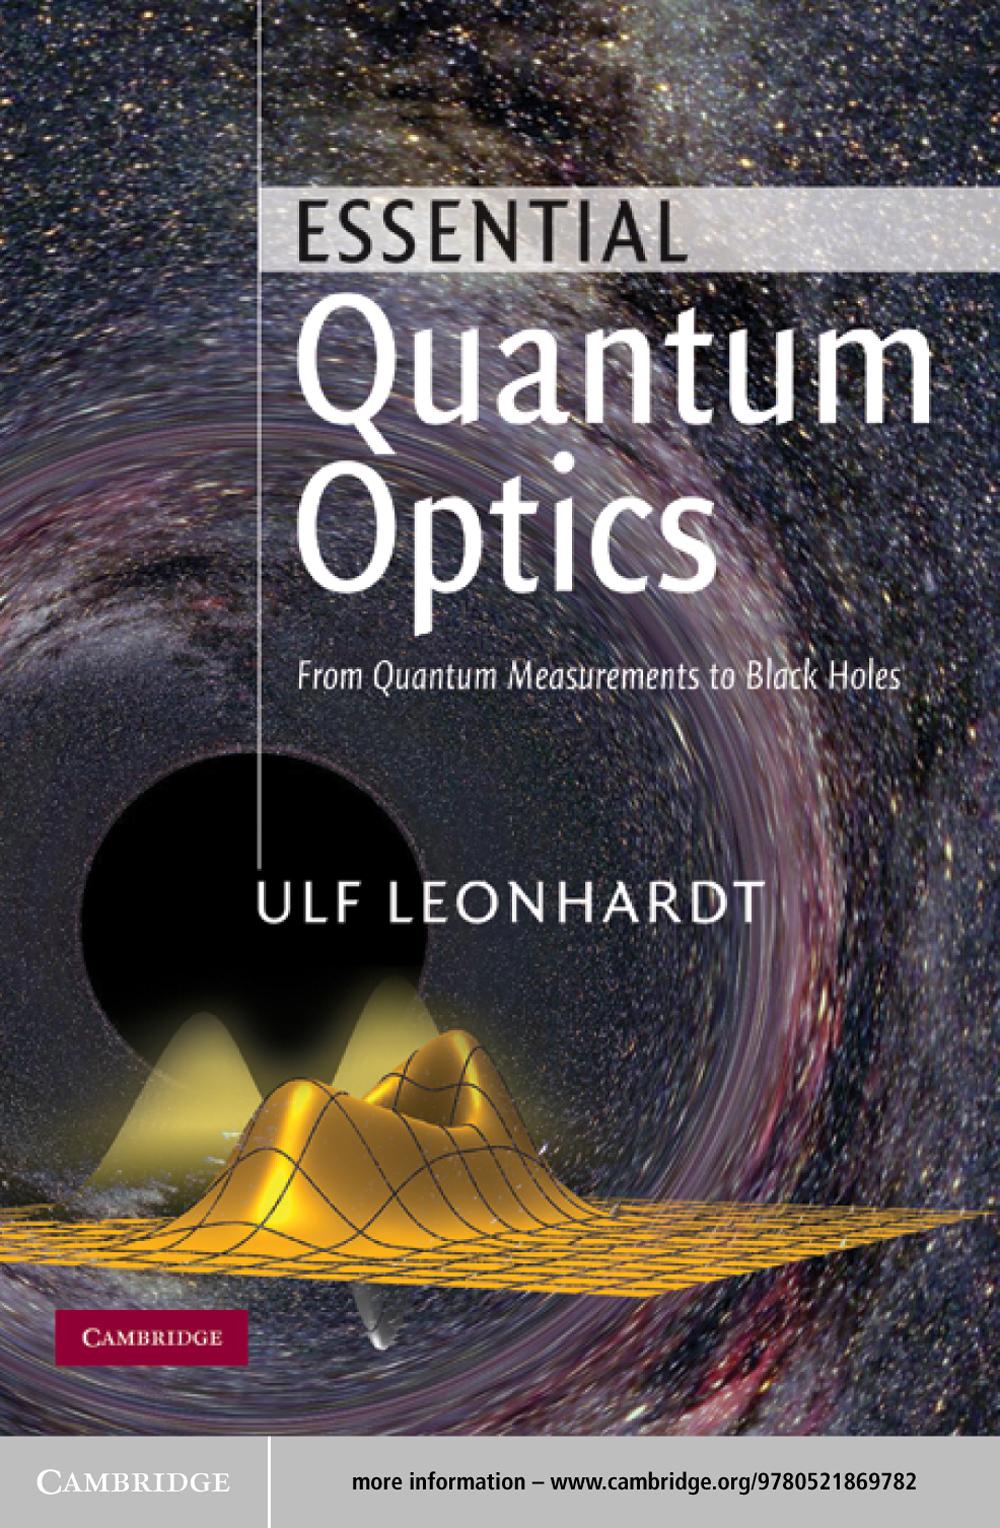 Essential Quantum Optics From Quantum Measurements to Black Holes